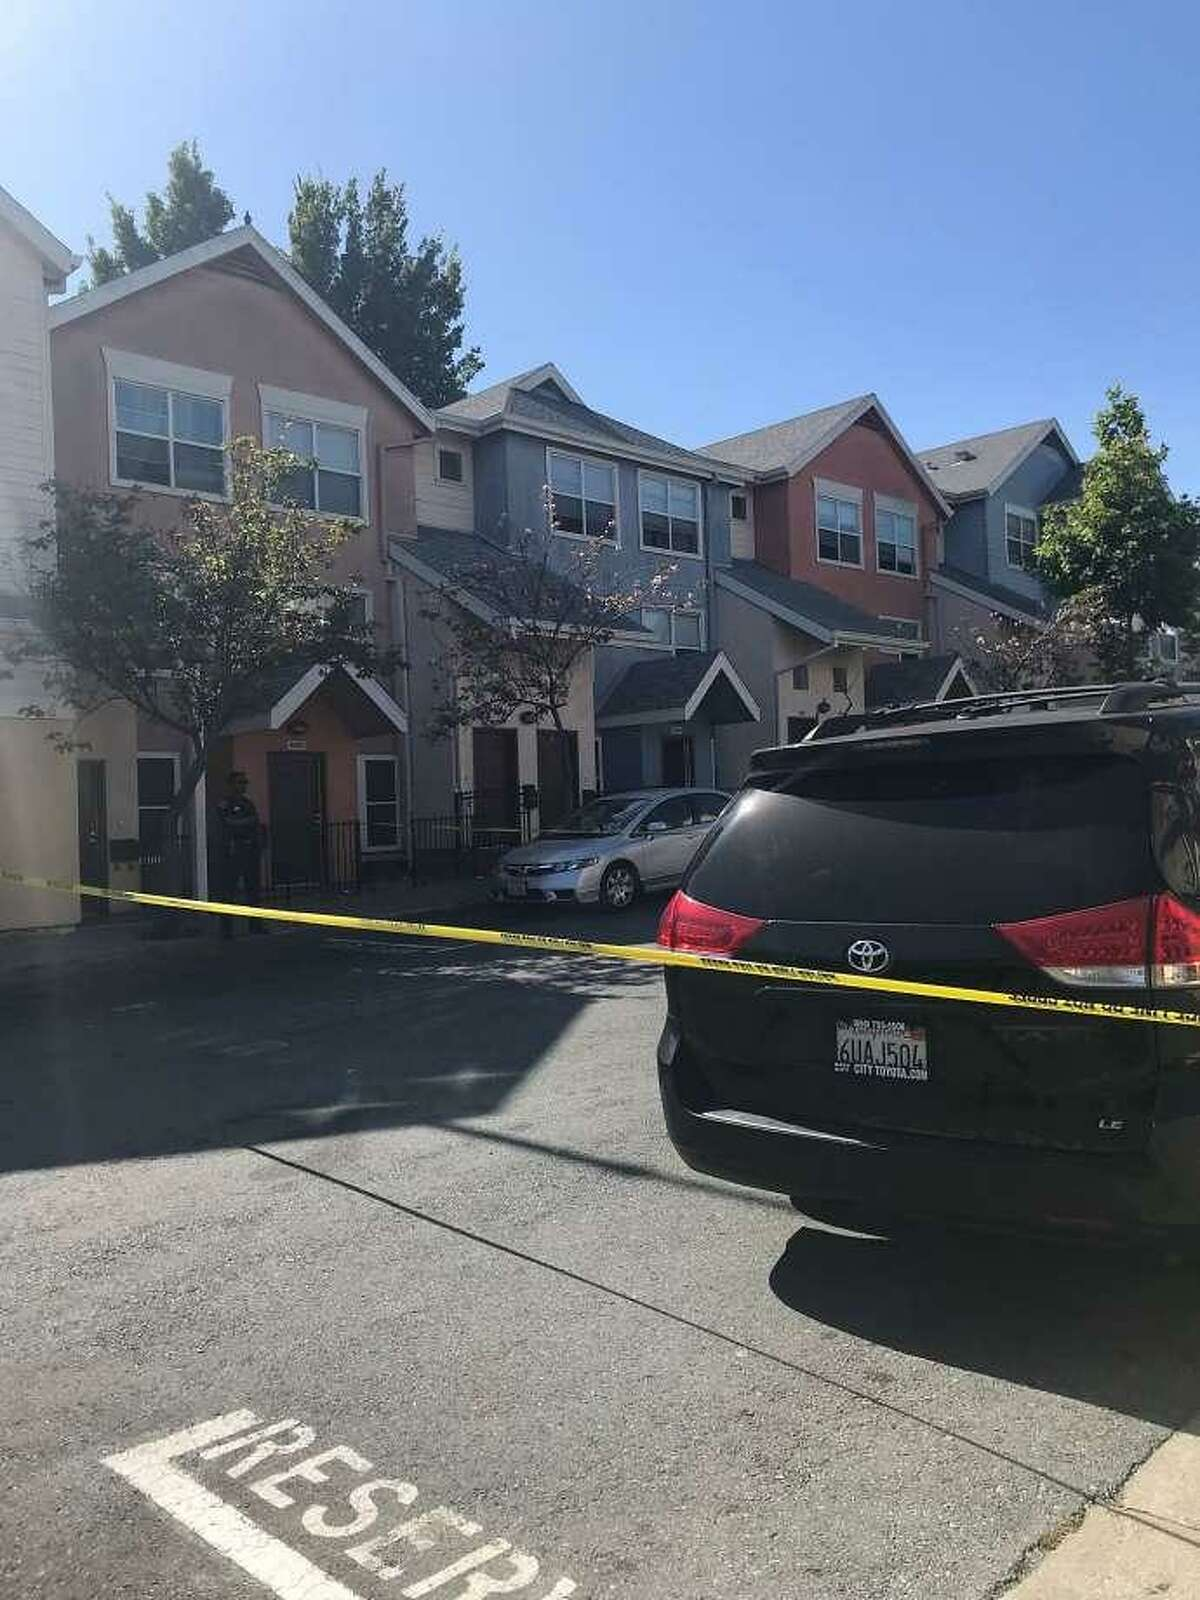 San Francisco police taped off the 1400 block of Treat Avenue, near the intersection of Cesar Chavez Street, after a shootout on Thursday, June 7, 2018.